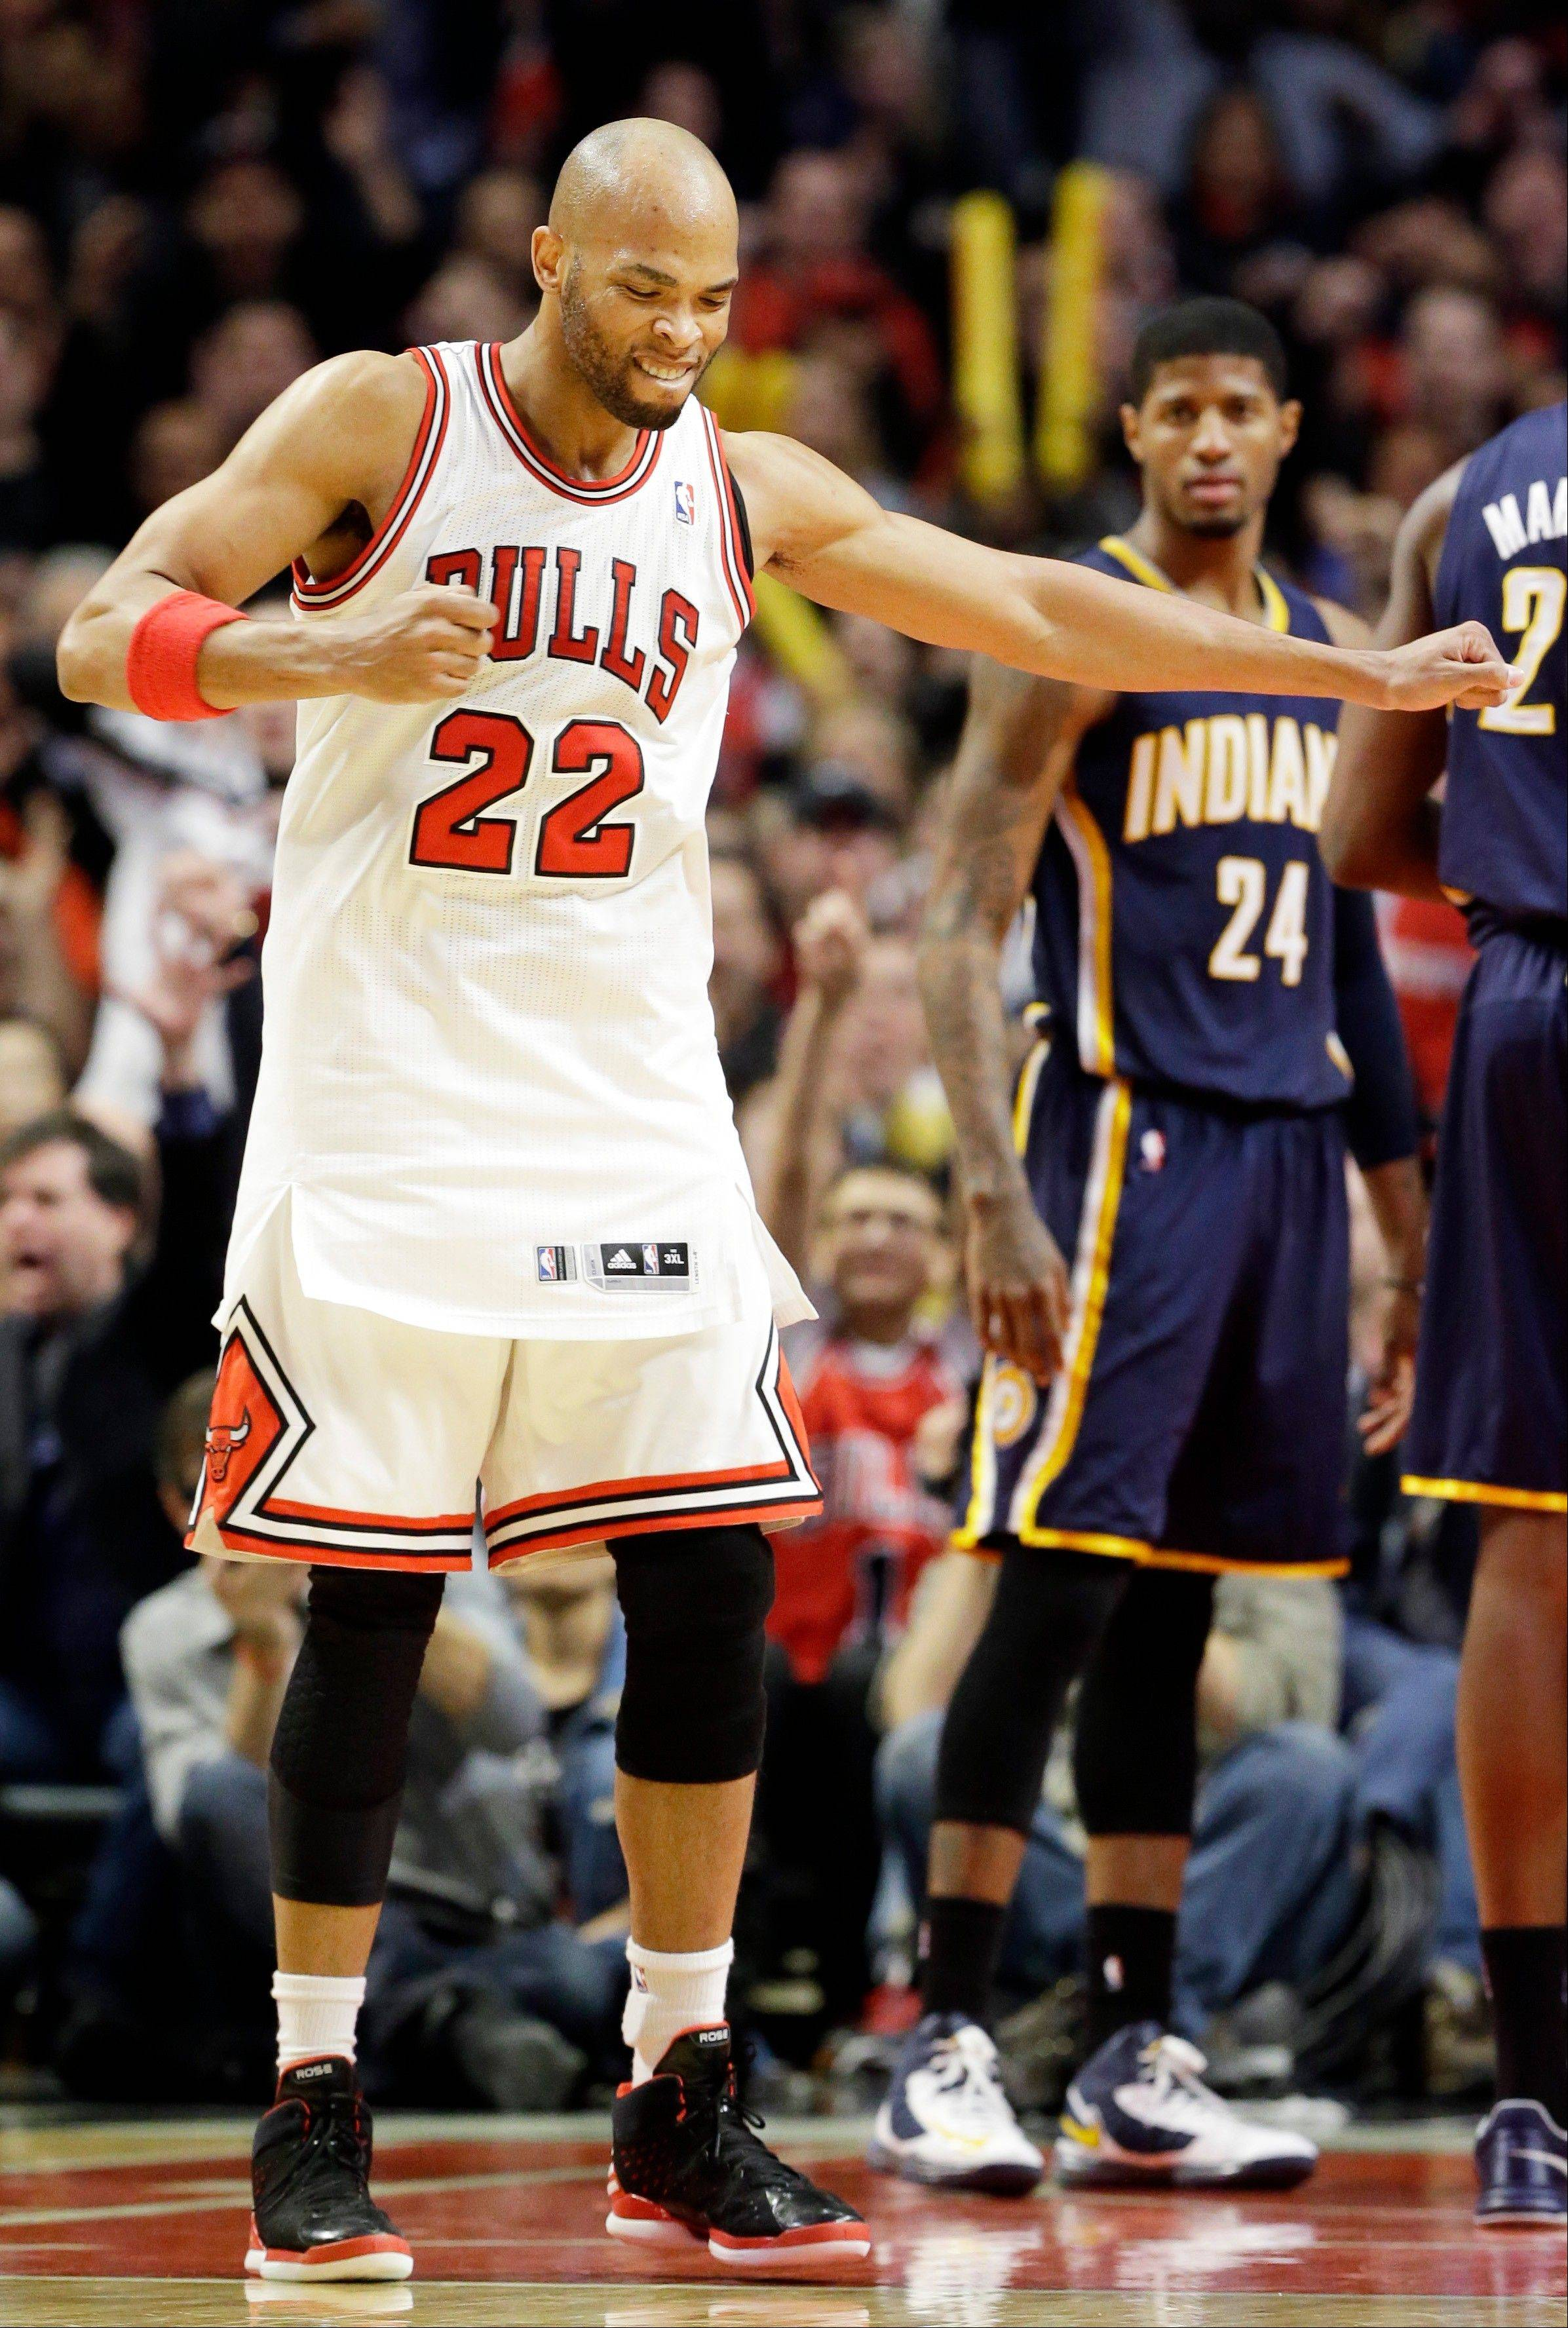 Chicago Bulls forward Taj Gibson (22) reacts after scoring a basket as Indiana Pacers forward Paul George (24) looks on during the second half of an NBA basketball game in Chicago on Saturday, March 23, 2013. The Bulls won 87-84.